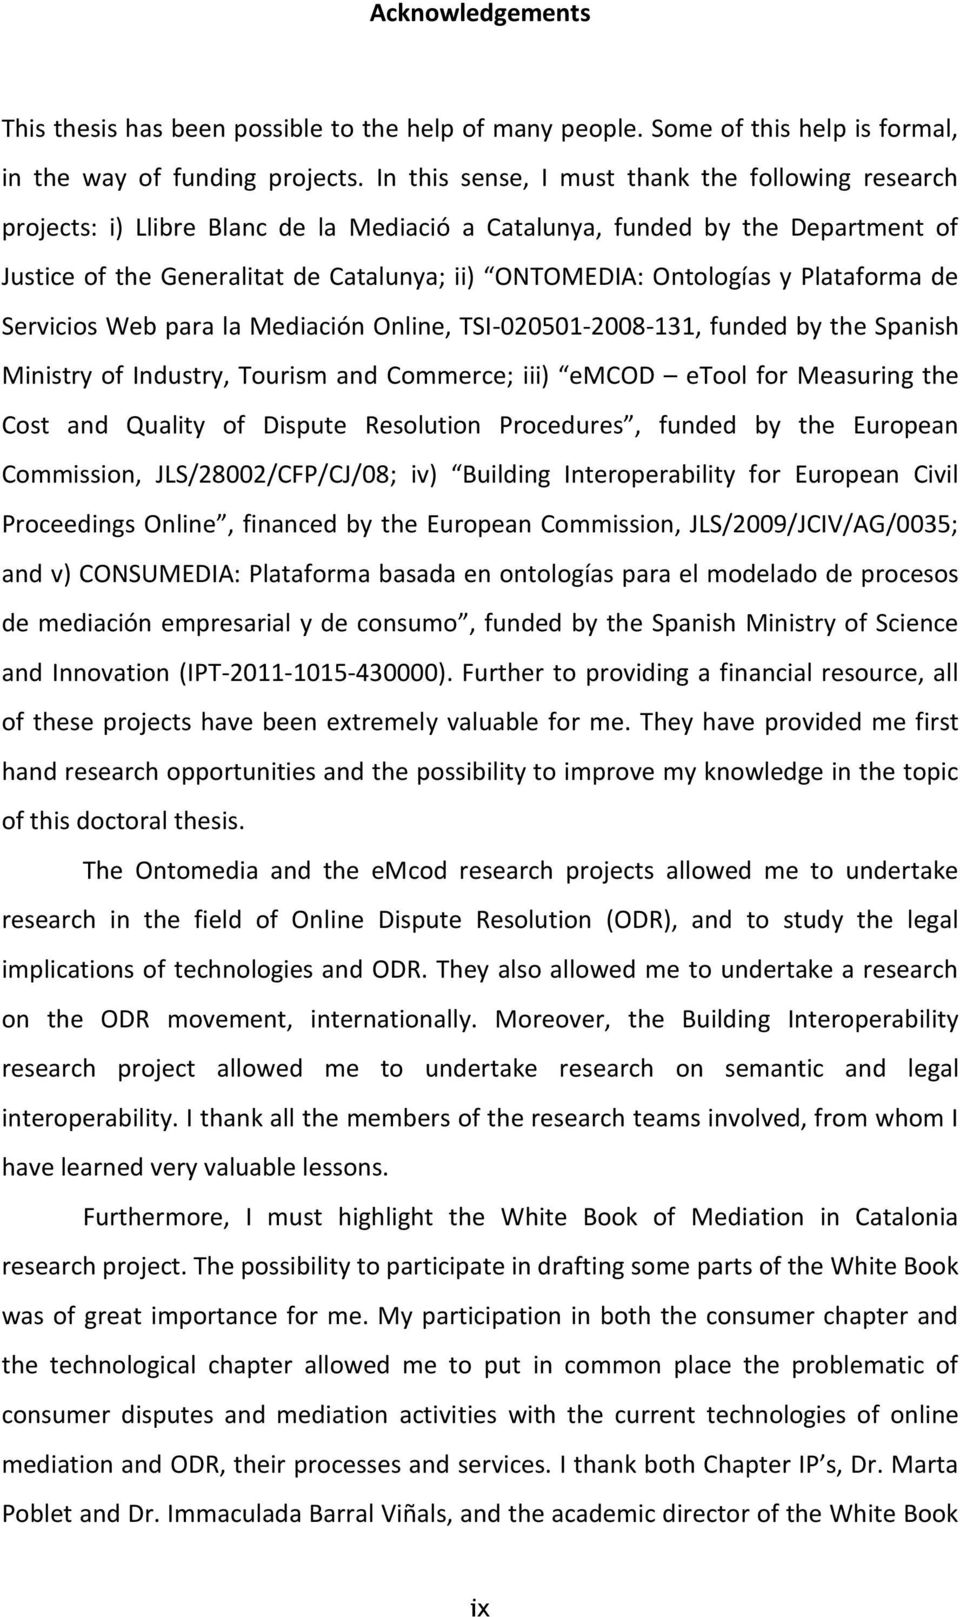 y Plataforma de Servicios Web para la Mediación Online, TSI-020501-2008-131, funded by the Spanish Ministry of Industry, Tourism and Commerce; iii) emcod etool for Measuring the Cost and Quality of